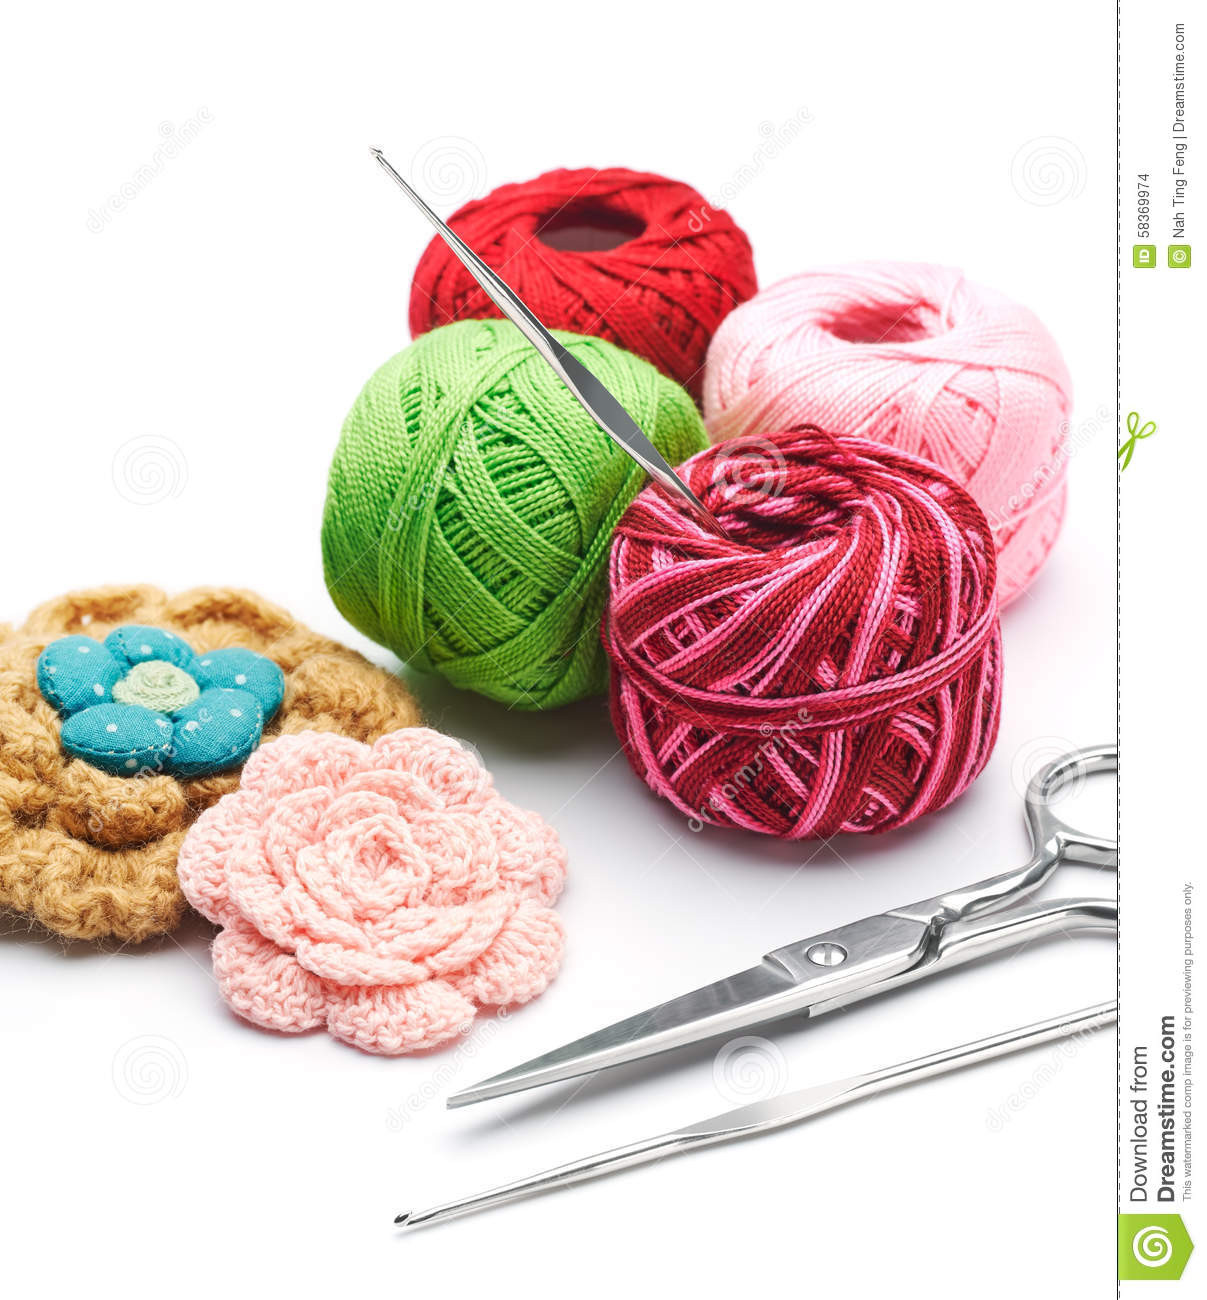 Crochet Hook and Yarn Lovely Yarns and Crochet Hooks Stock Image Of Superb 44 Images Crochet Hook and Yarn